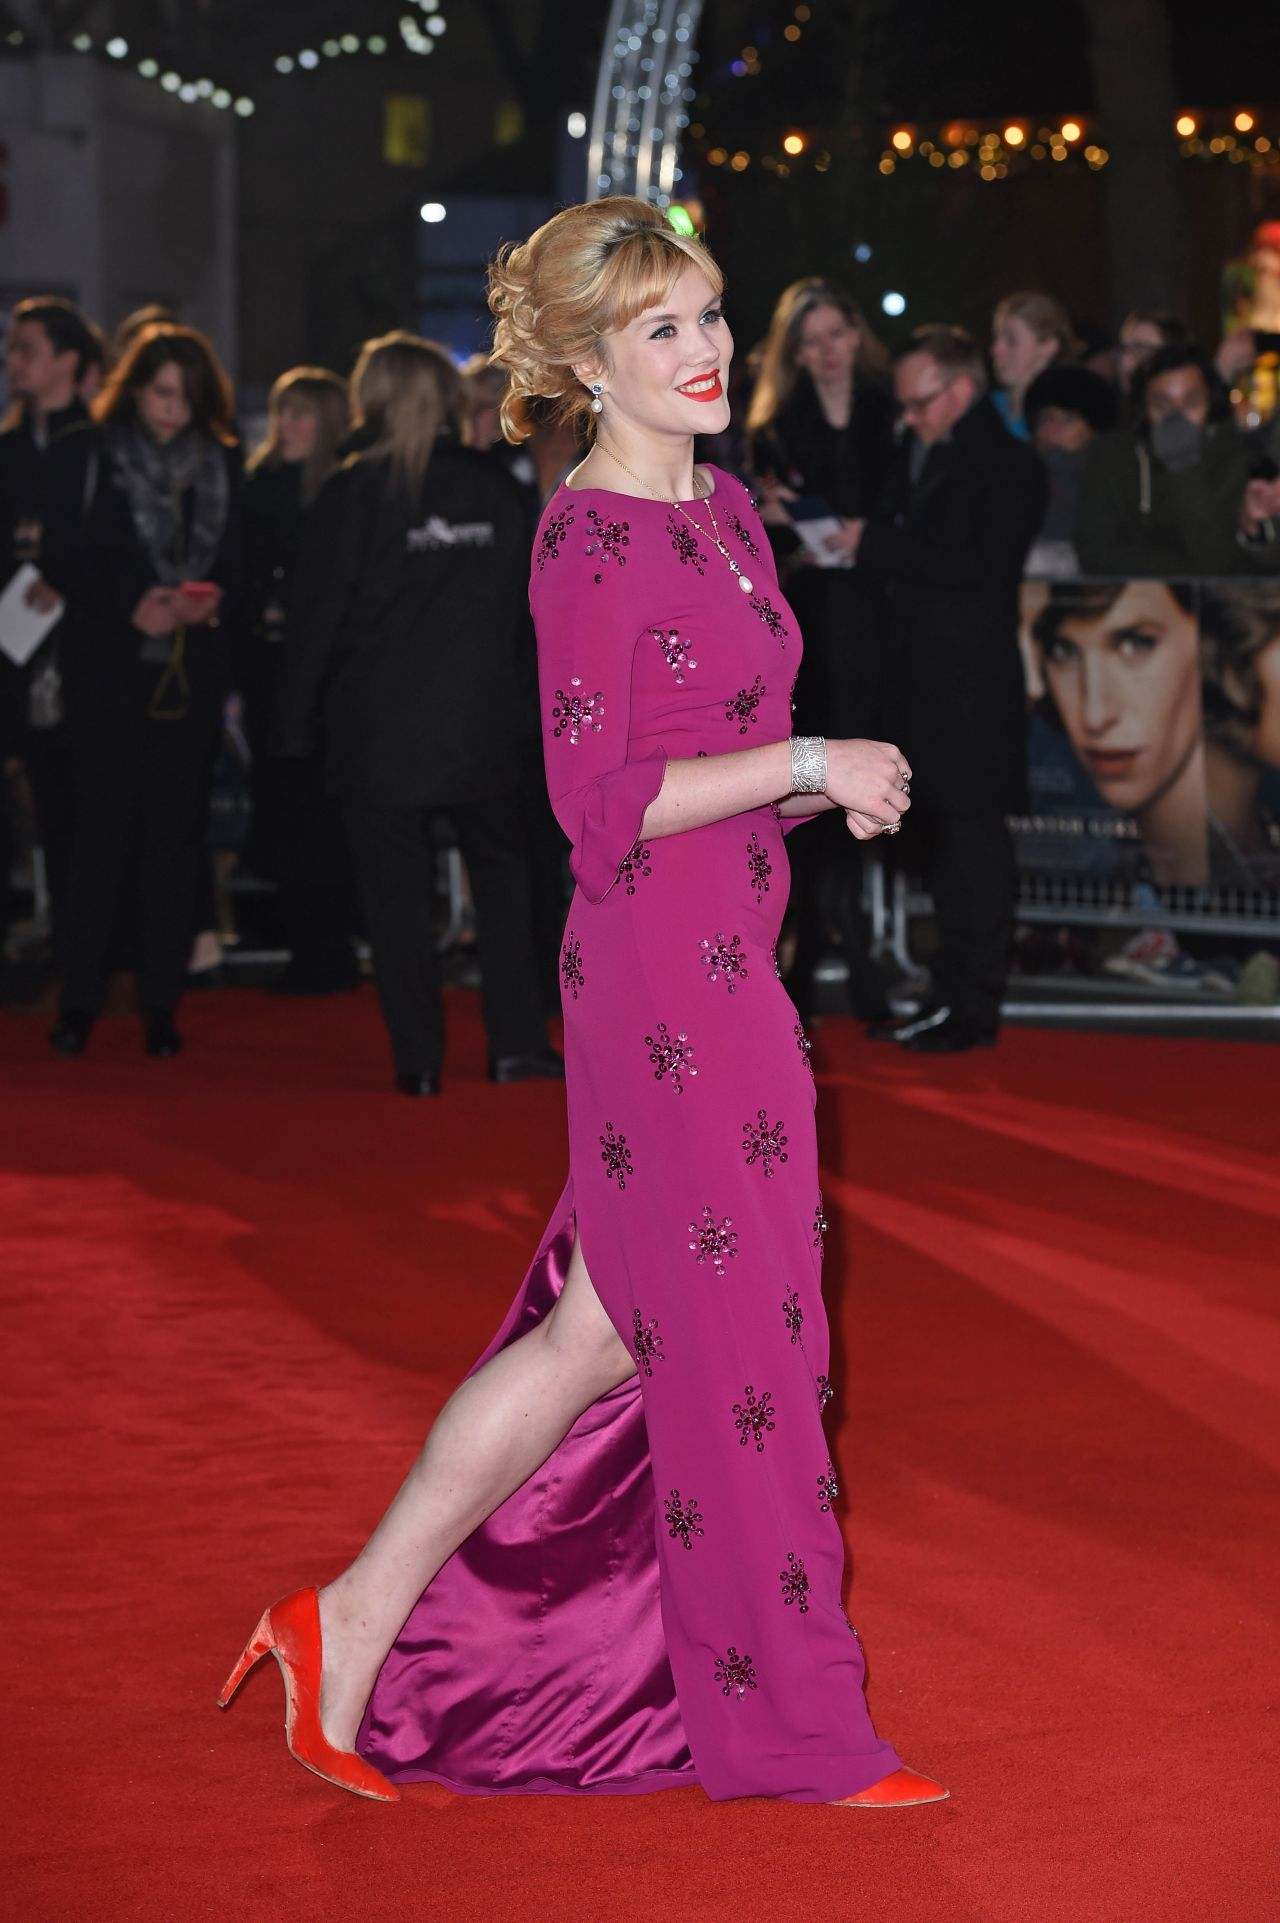 Emerald Fennell on Red Carpet – The Danish Girl Premiere ...